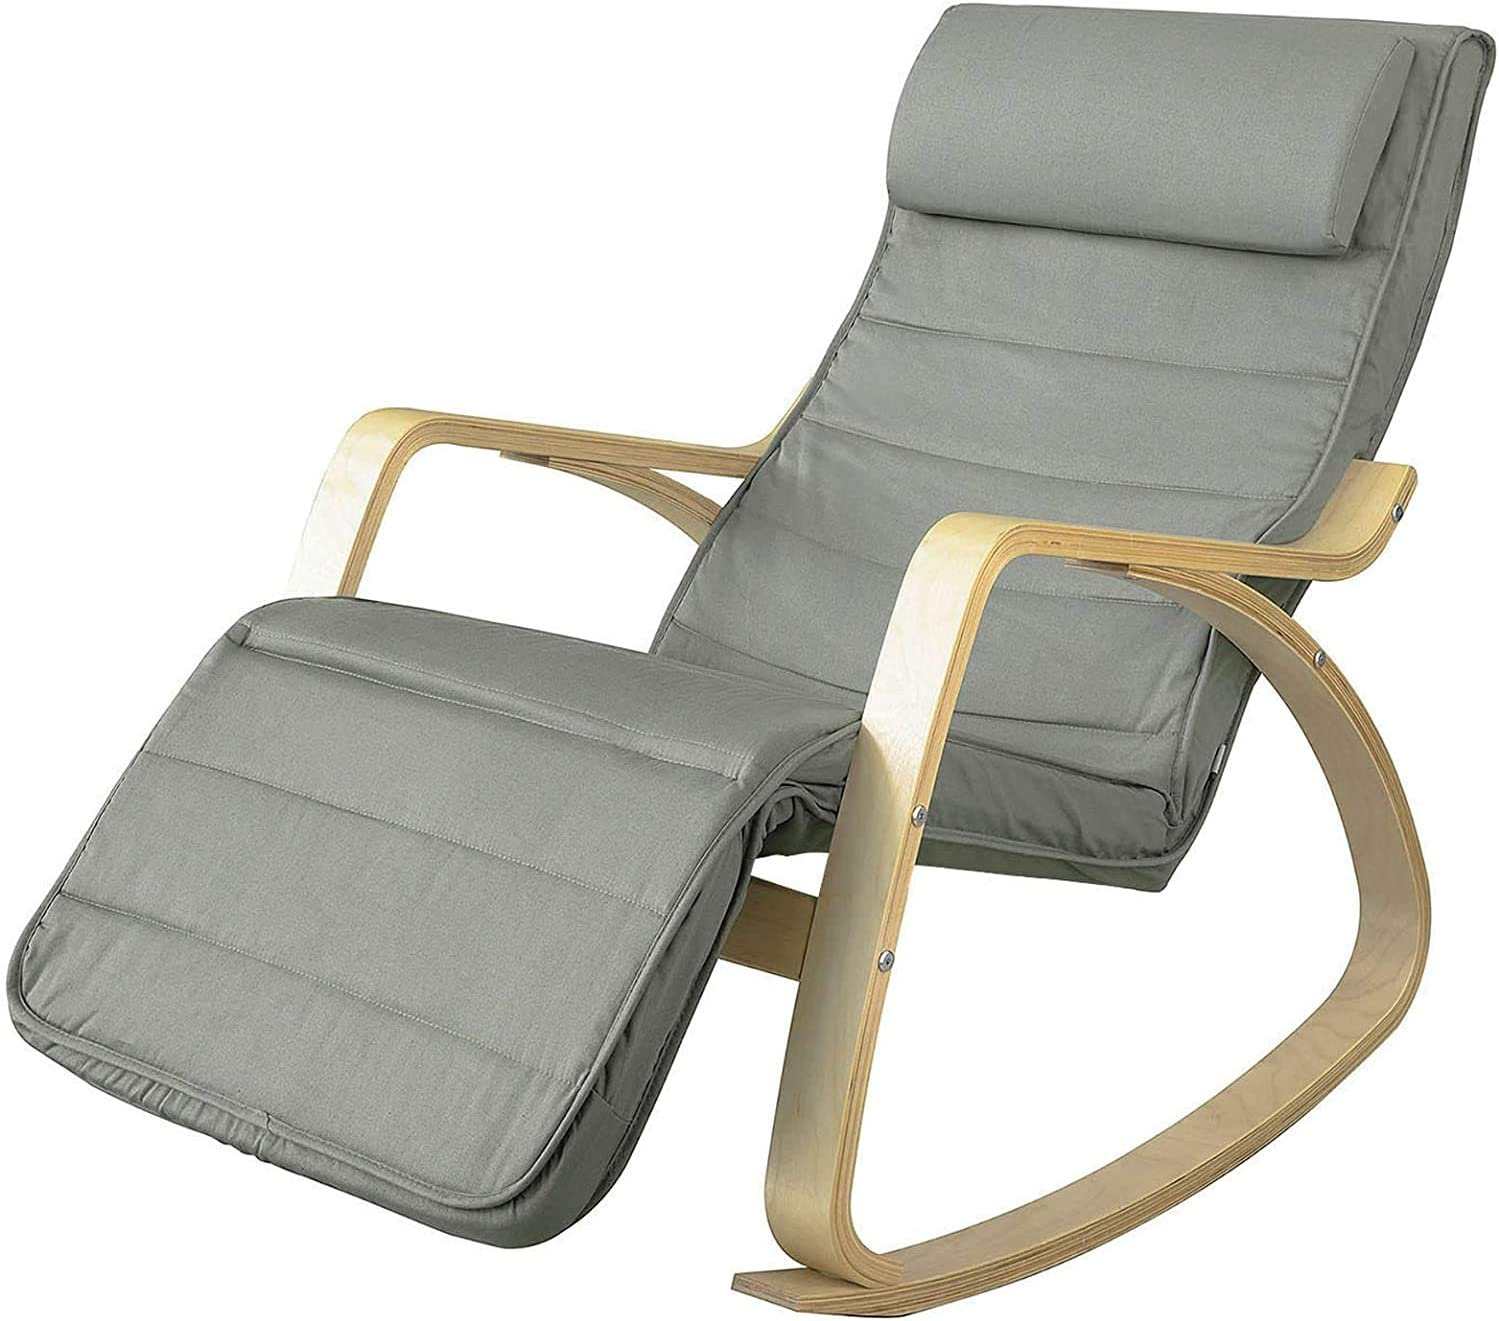 Haotian FST16-DG Max 57% OFF Comfortable Relax Rocking Rest Tampa Mall Chair Foot with